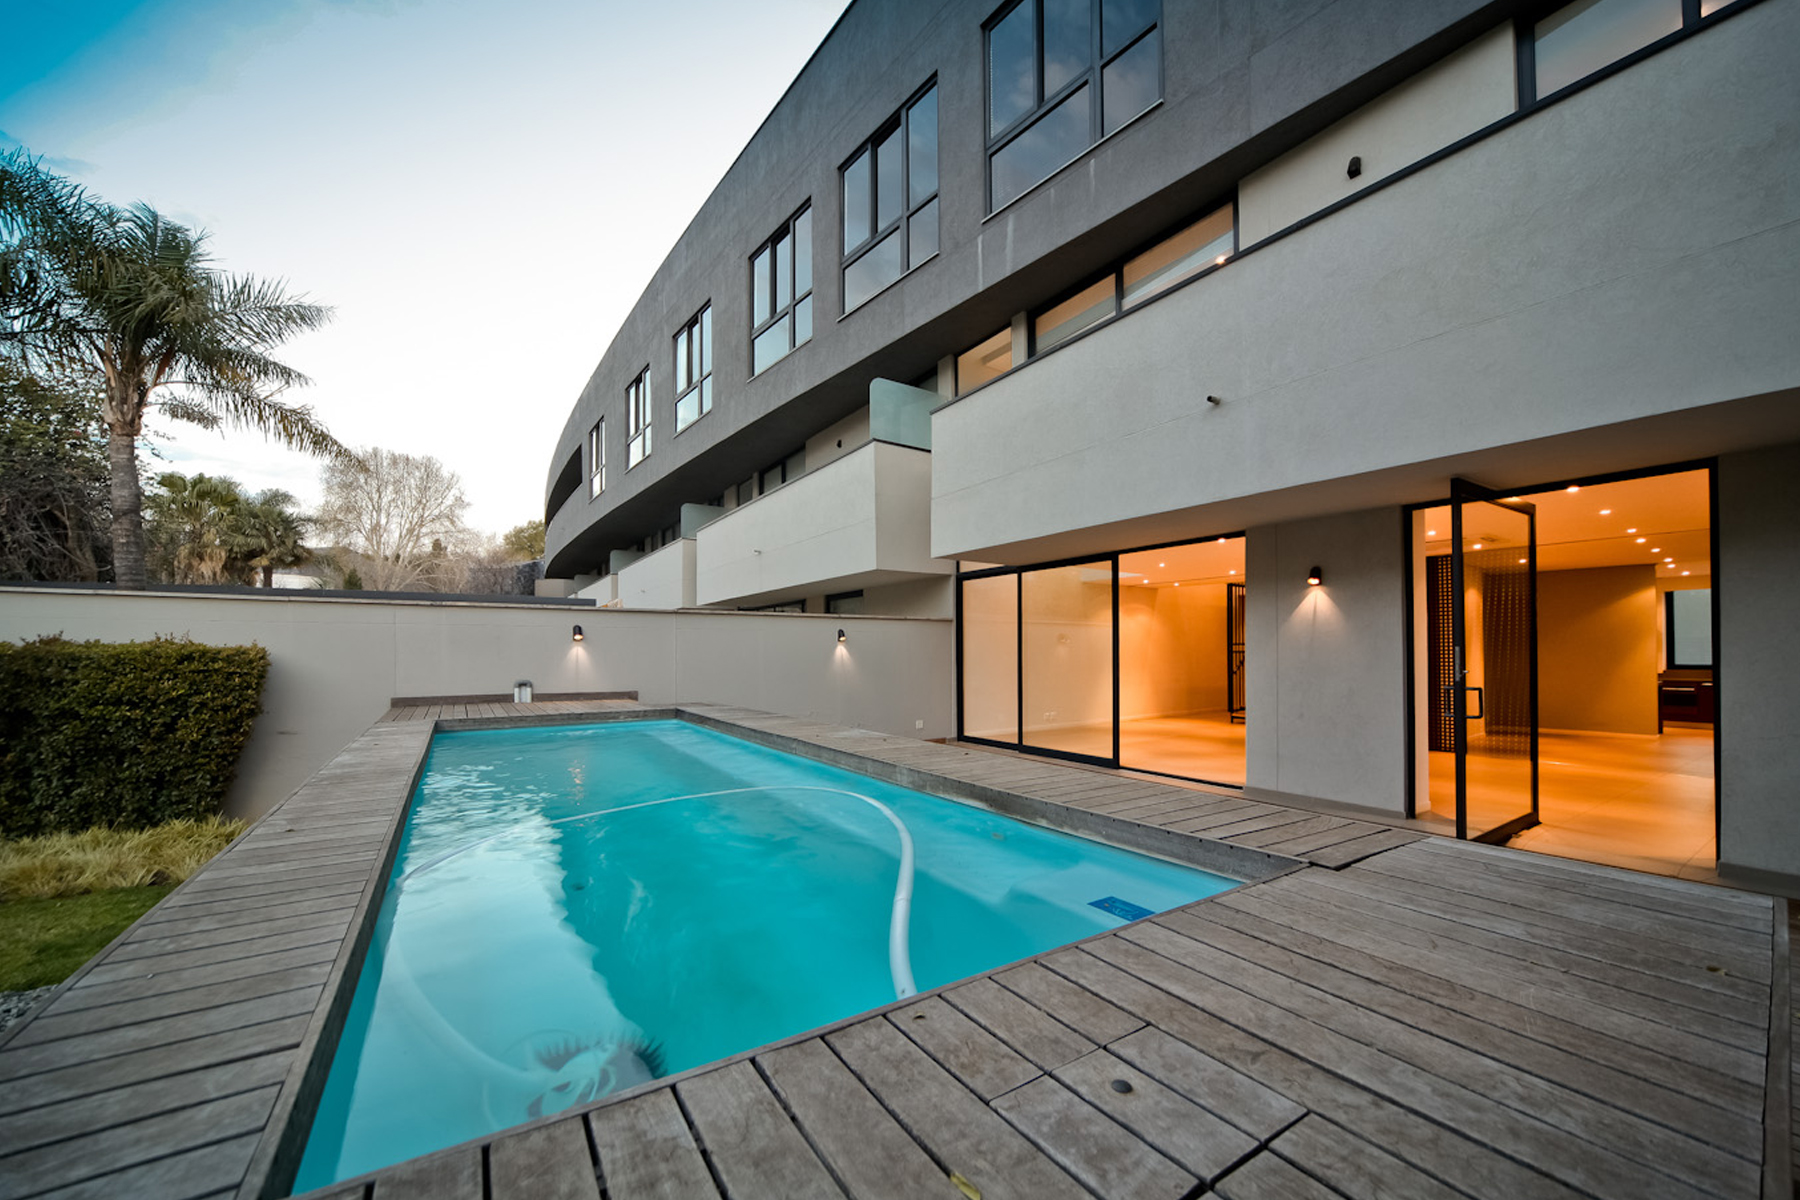 Townhouse for Sale at Dunkled West Johannesburg, Gauteng, 2196 South Africa